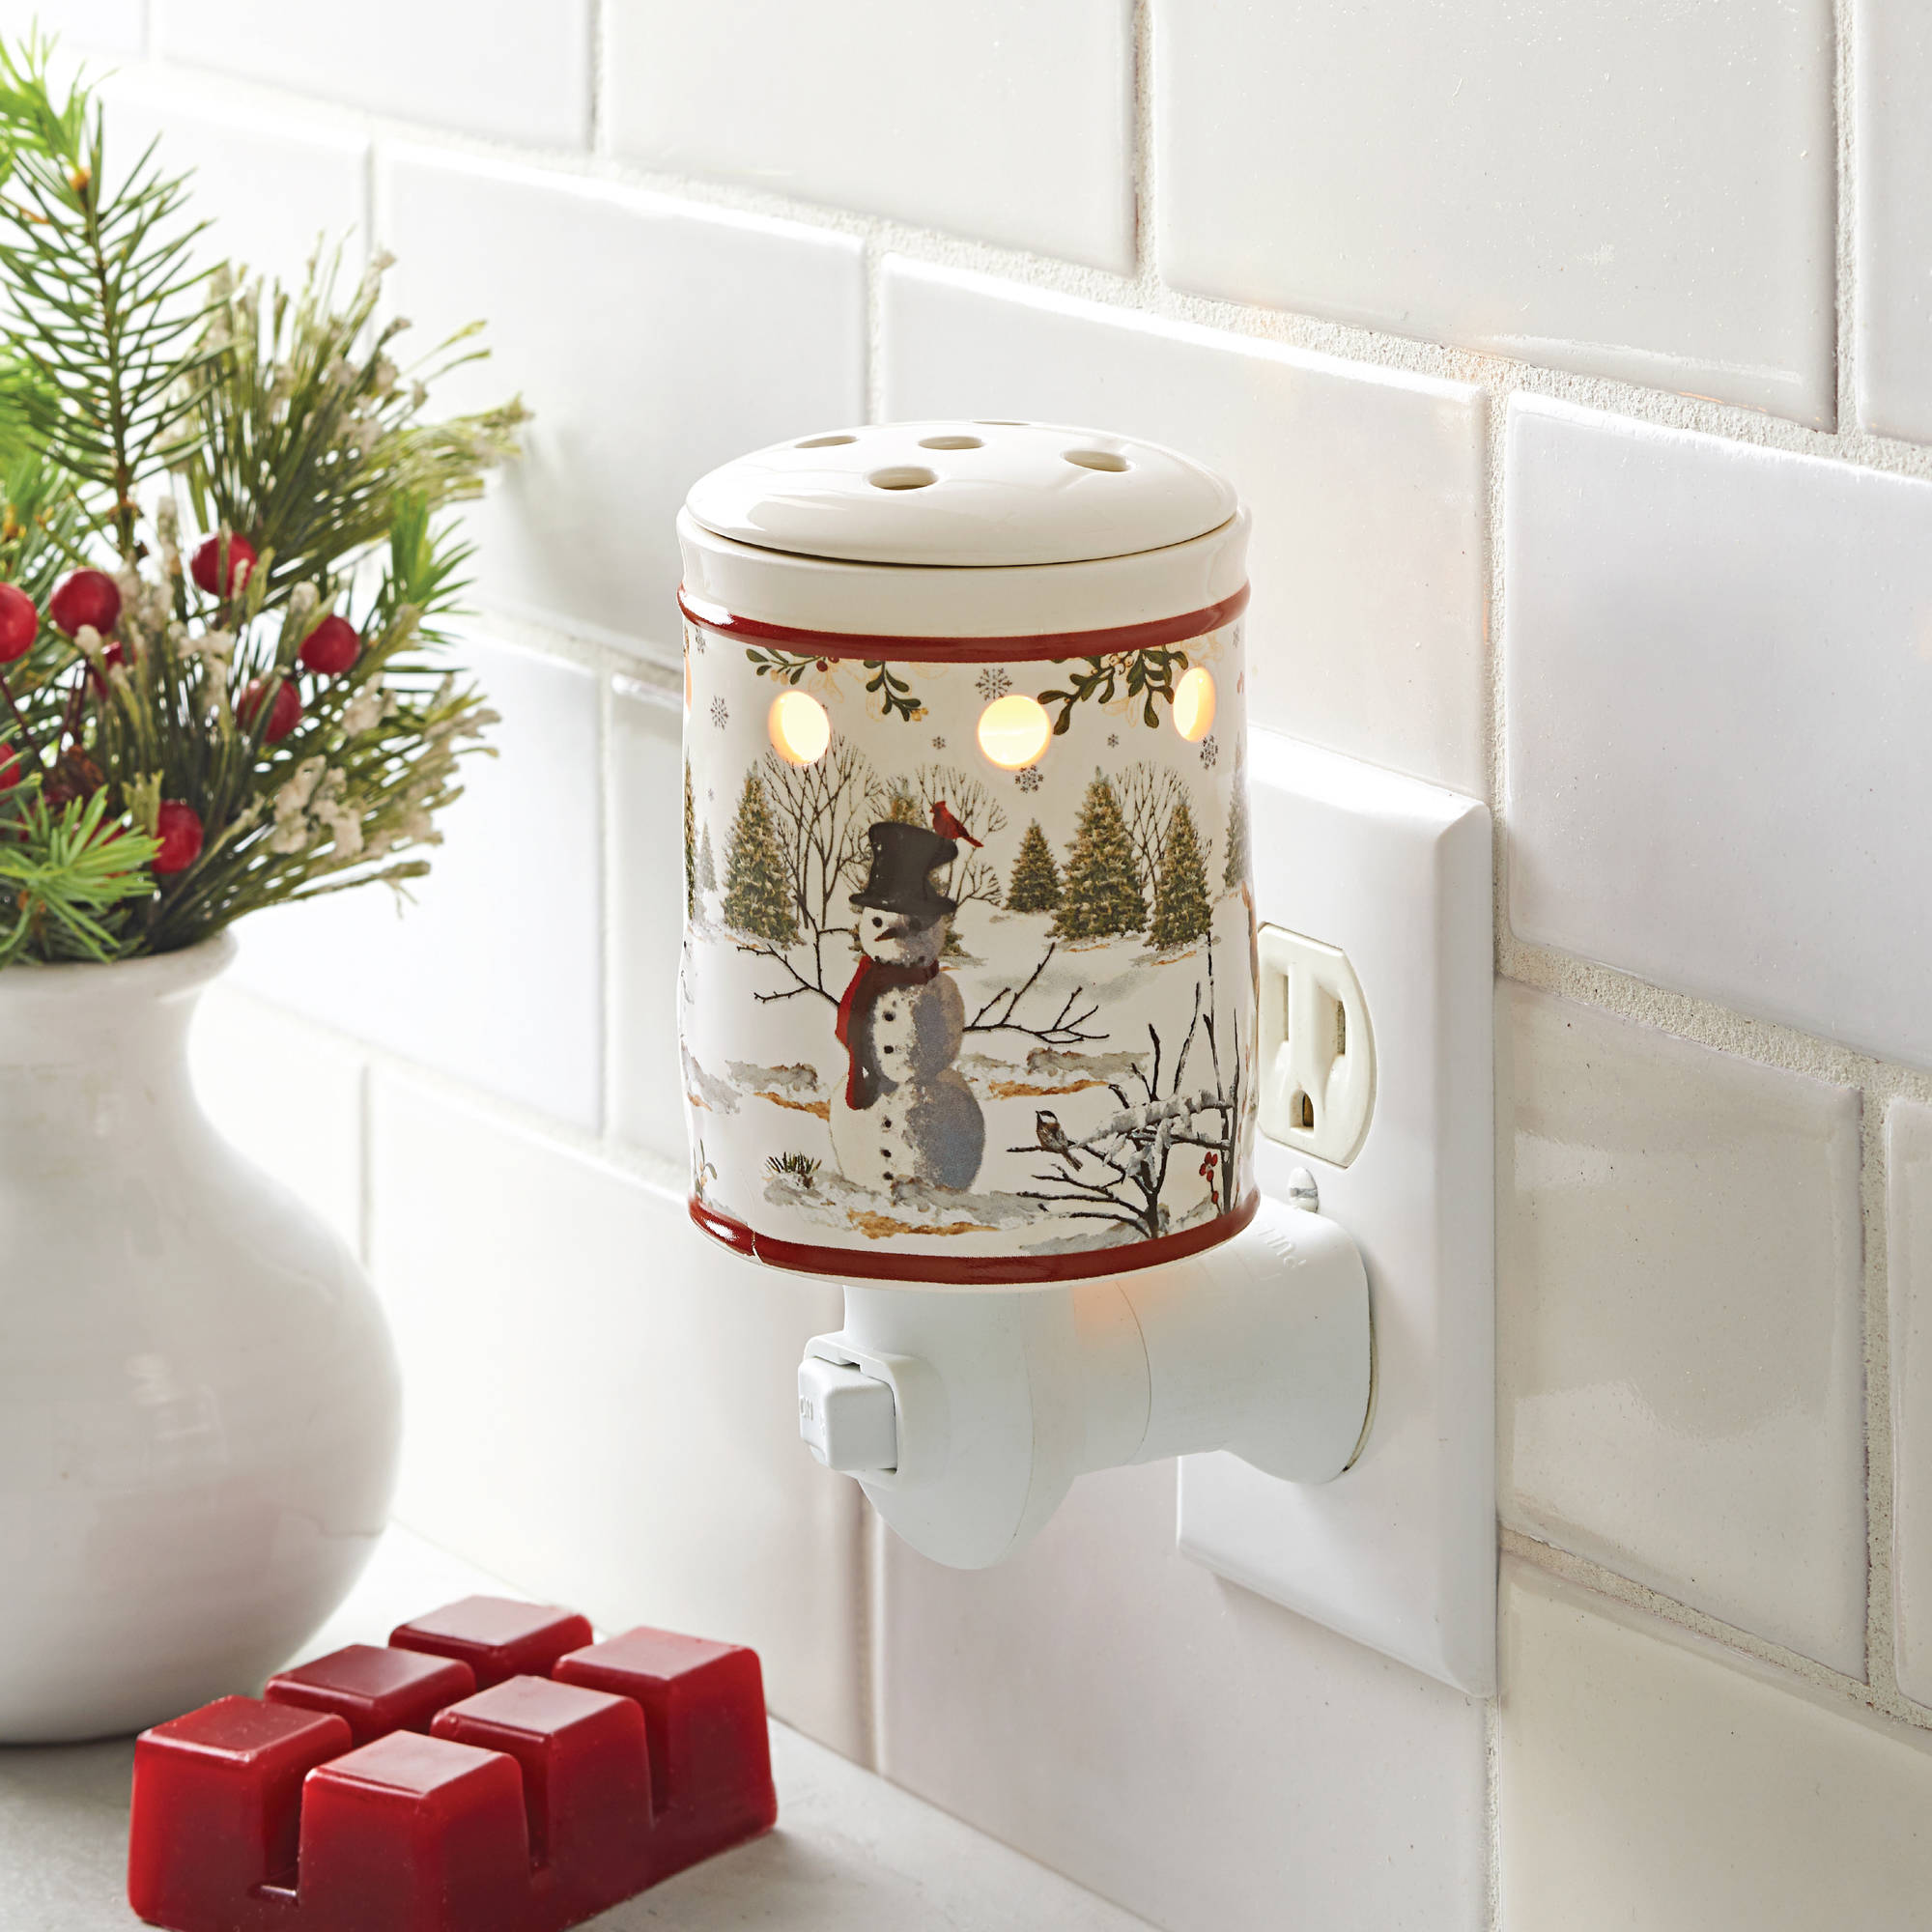 Better Homes & Gardens Heritage Accent Wax Warmer